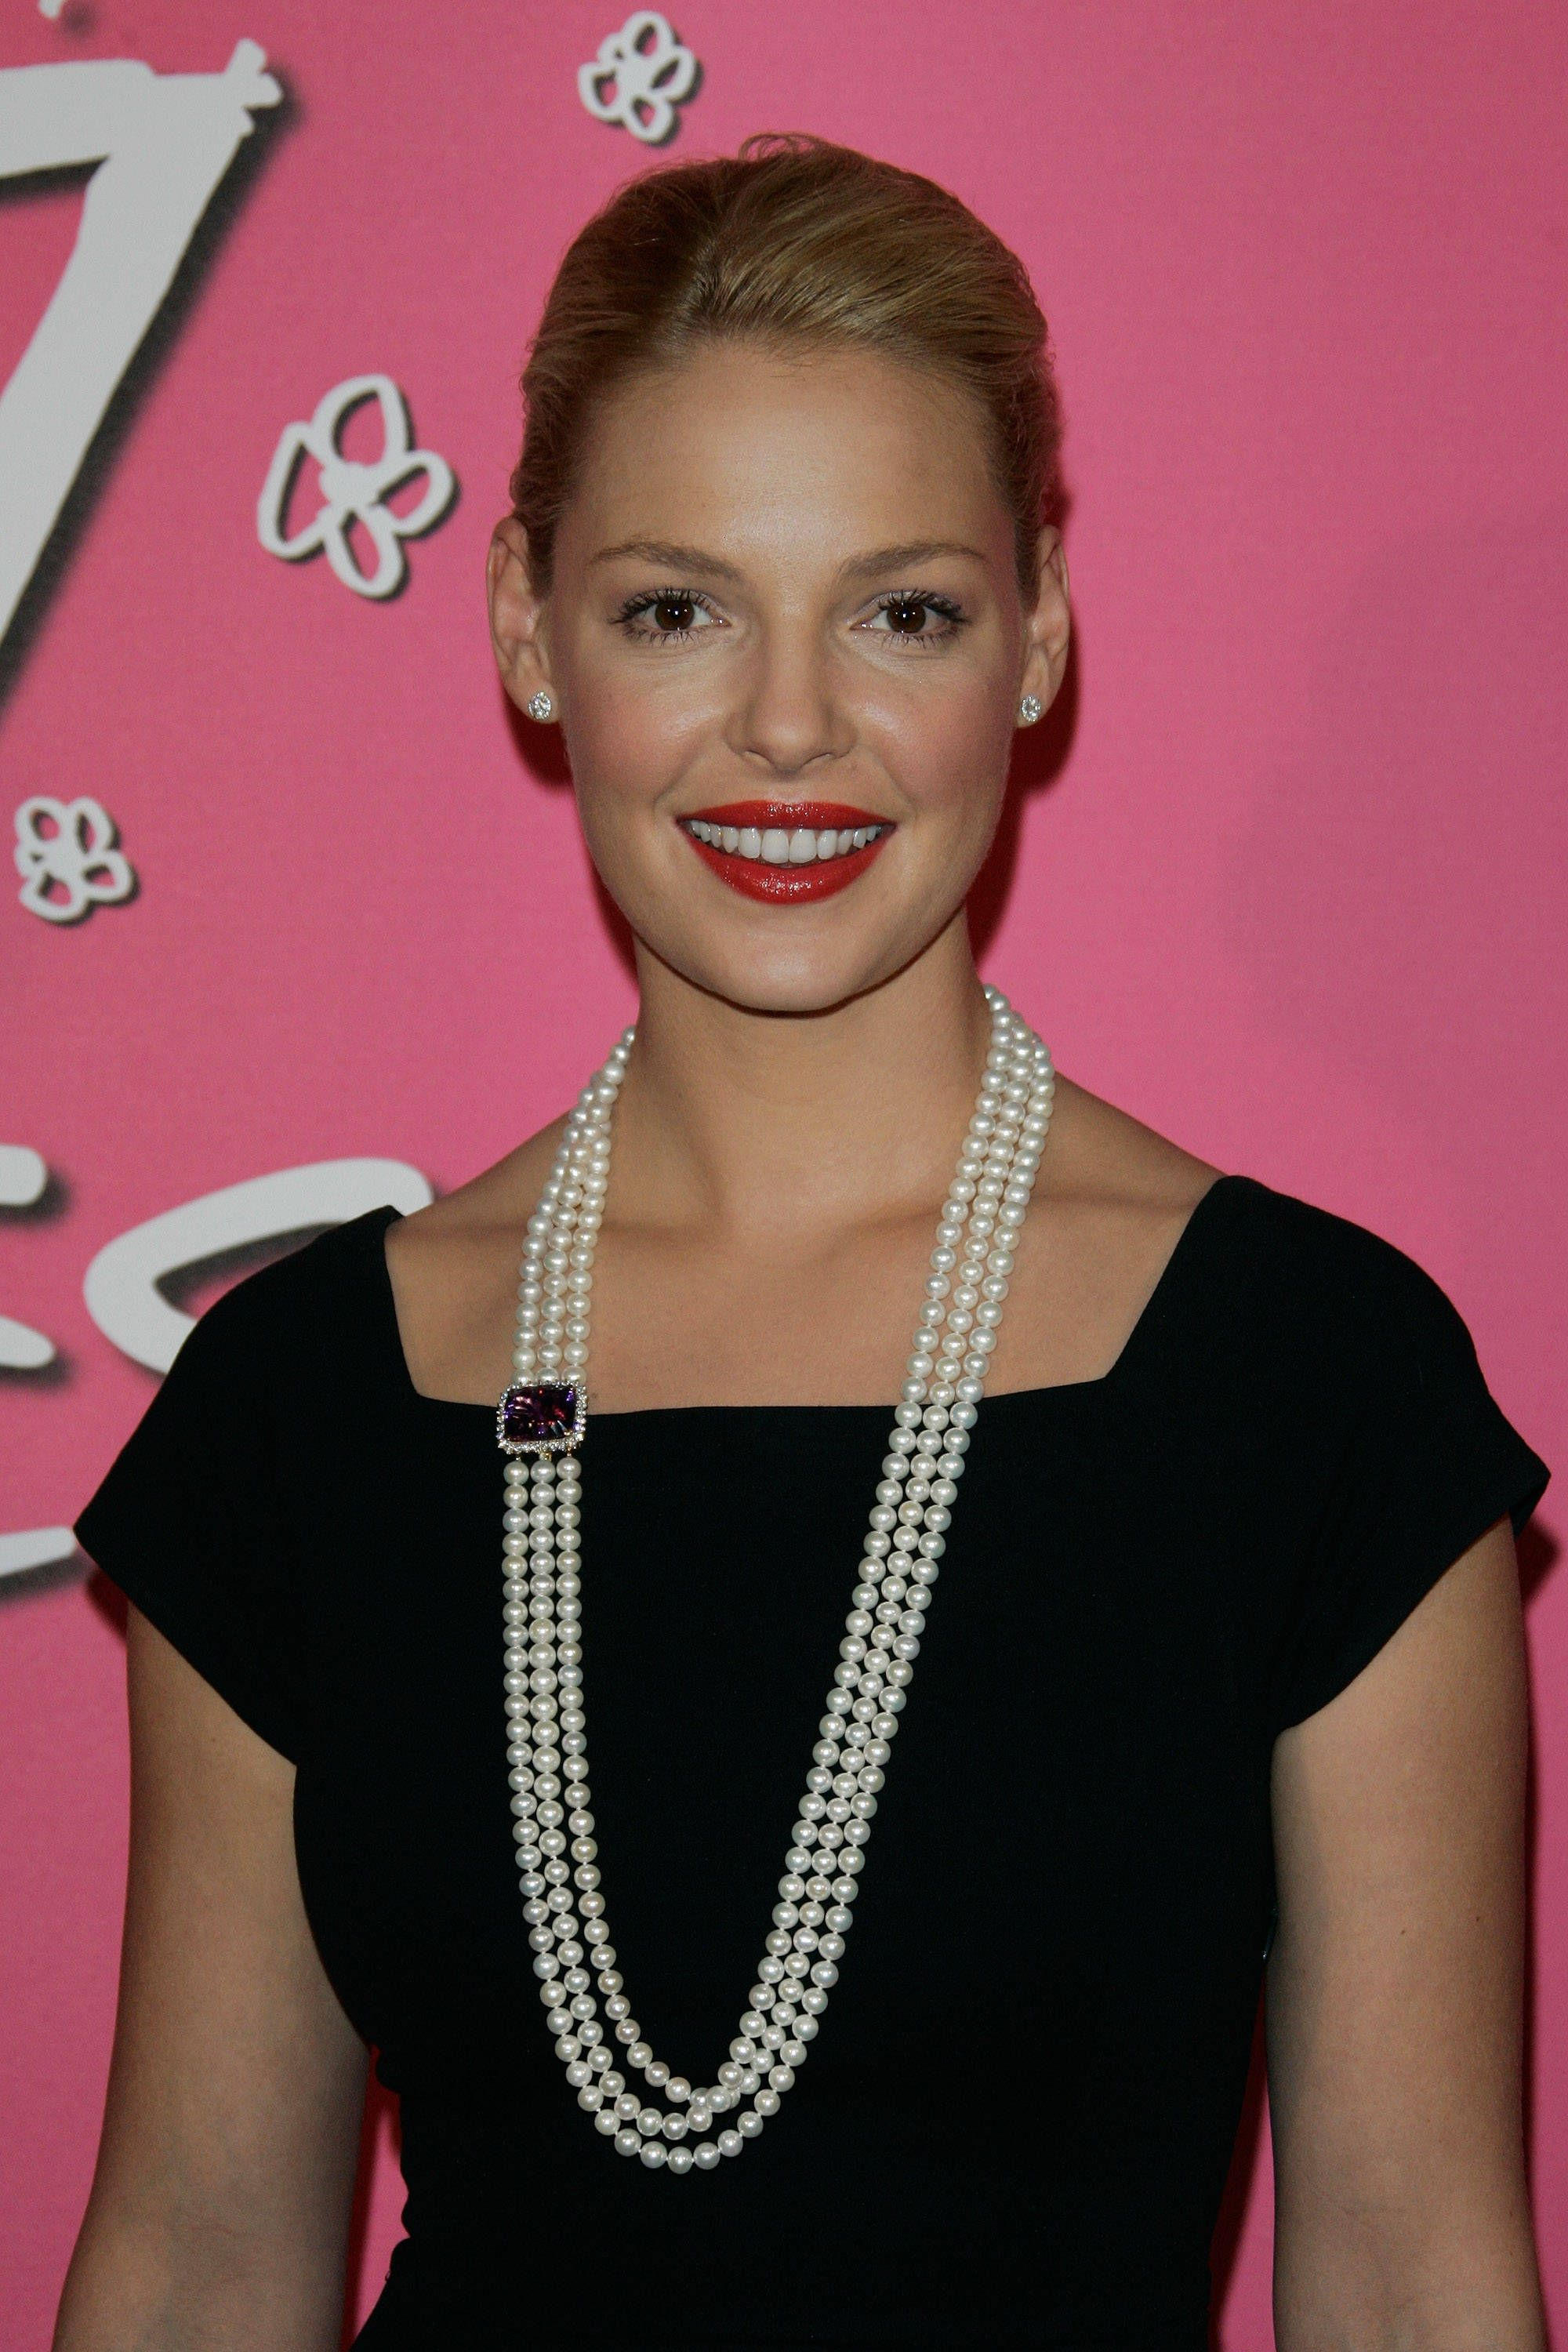 Katherine Heigl Celebrity Look for Less Pearl necklace Pearls